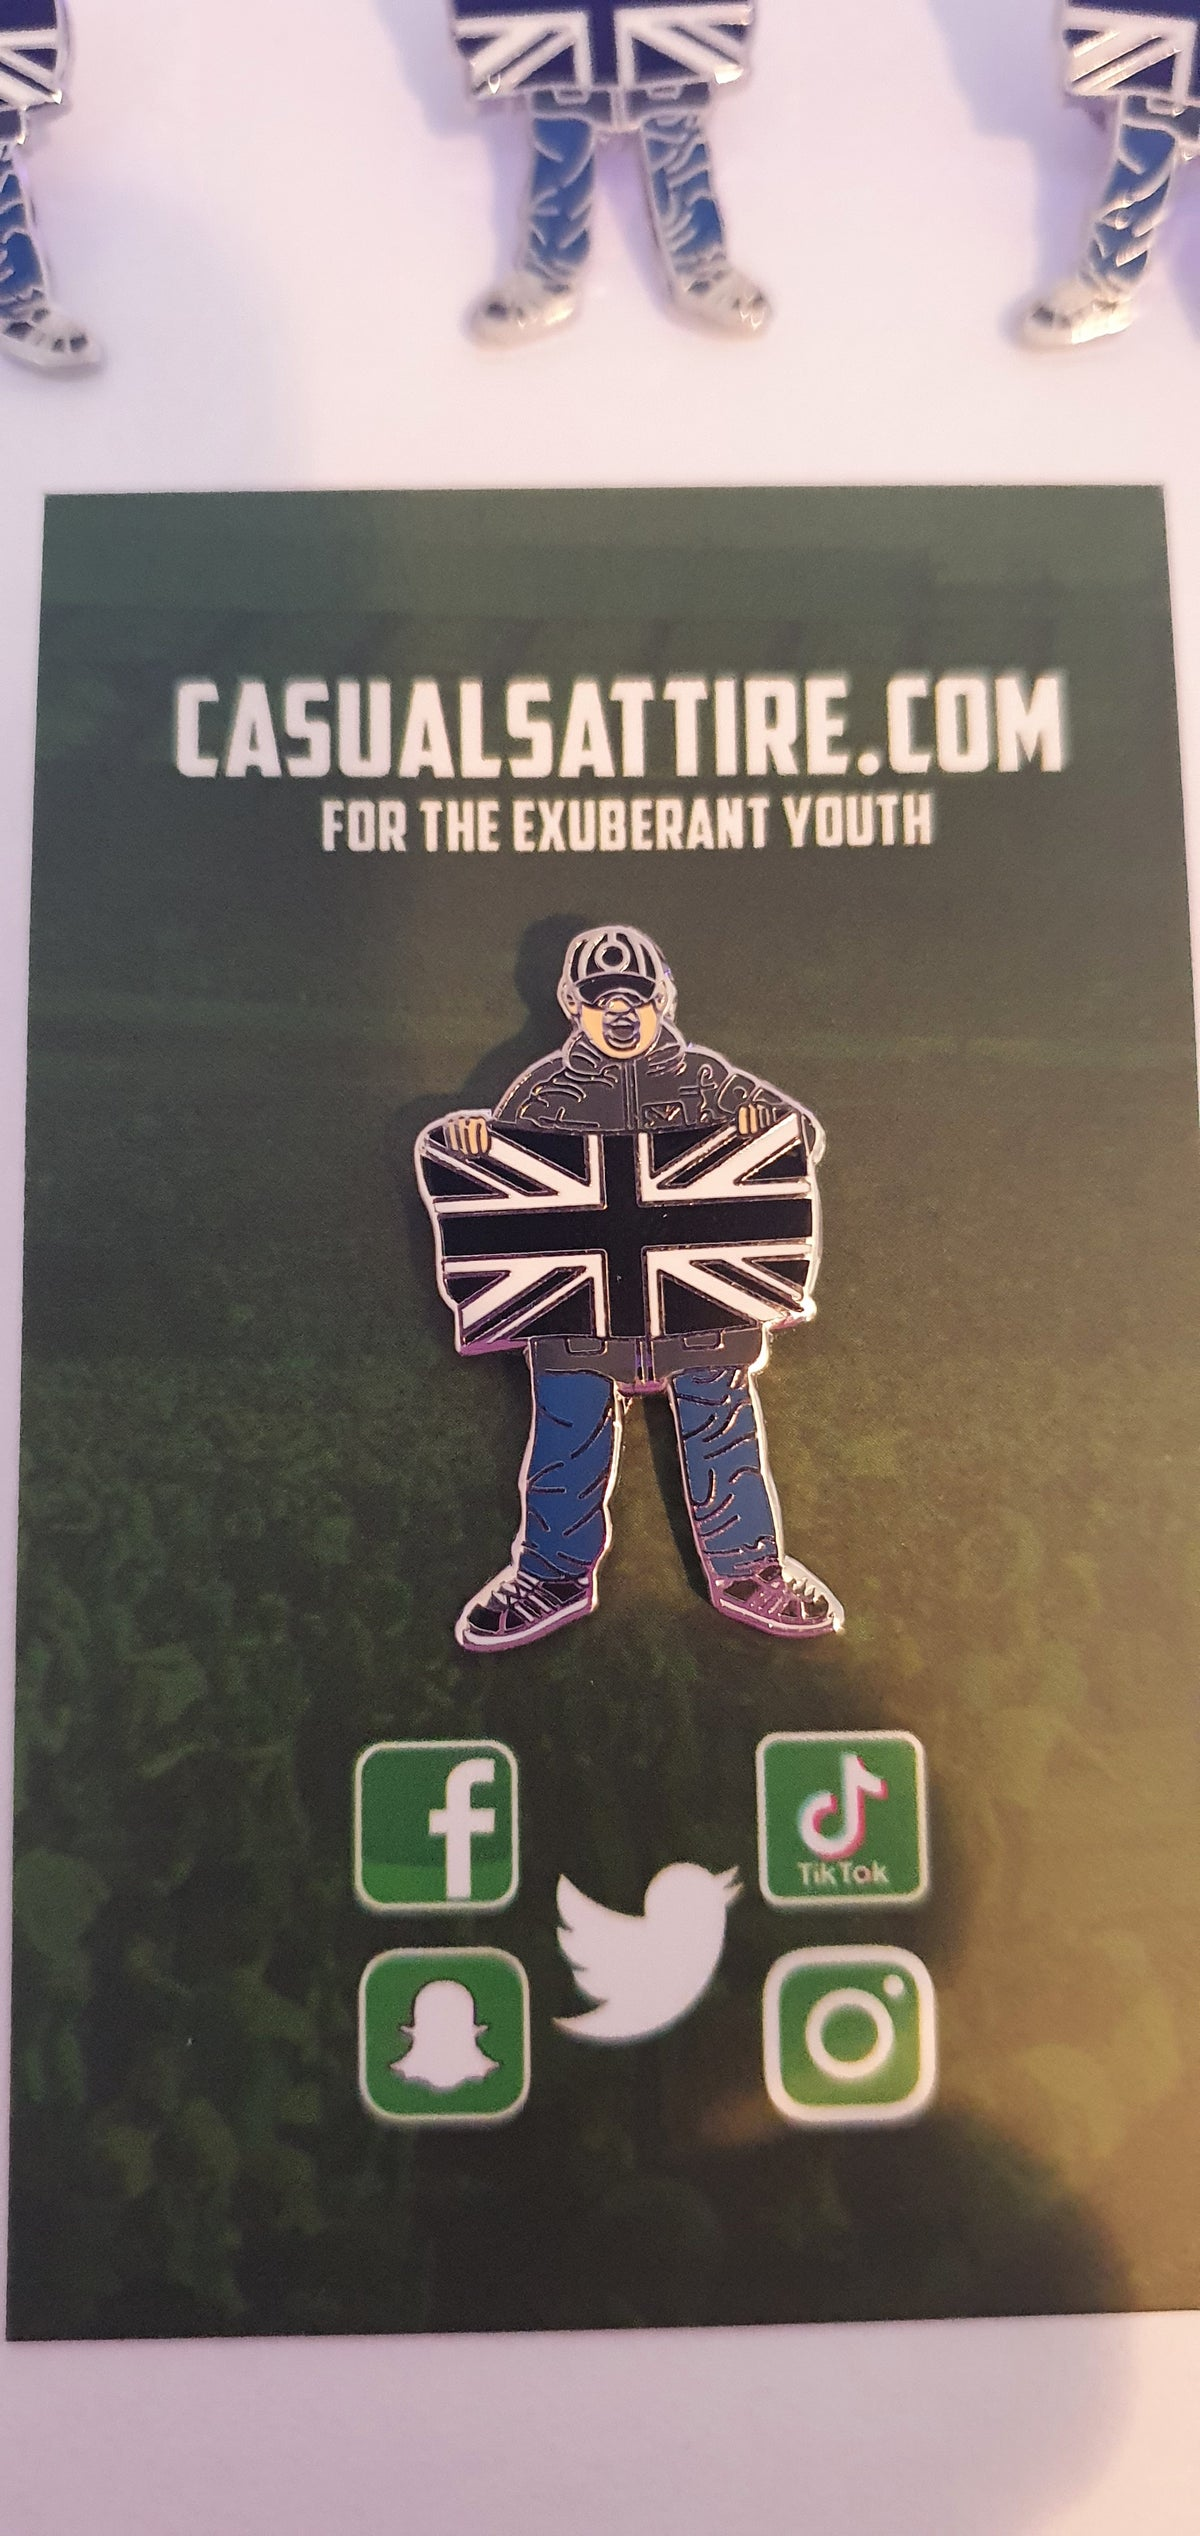 Newcastle, St Mirren, Notts County, Grimsby, Darlington Football Casual Brand new pin badge.